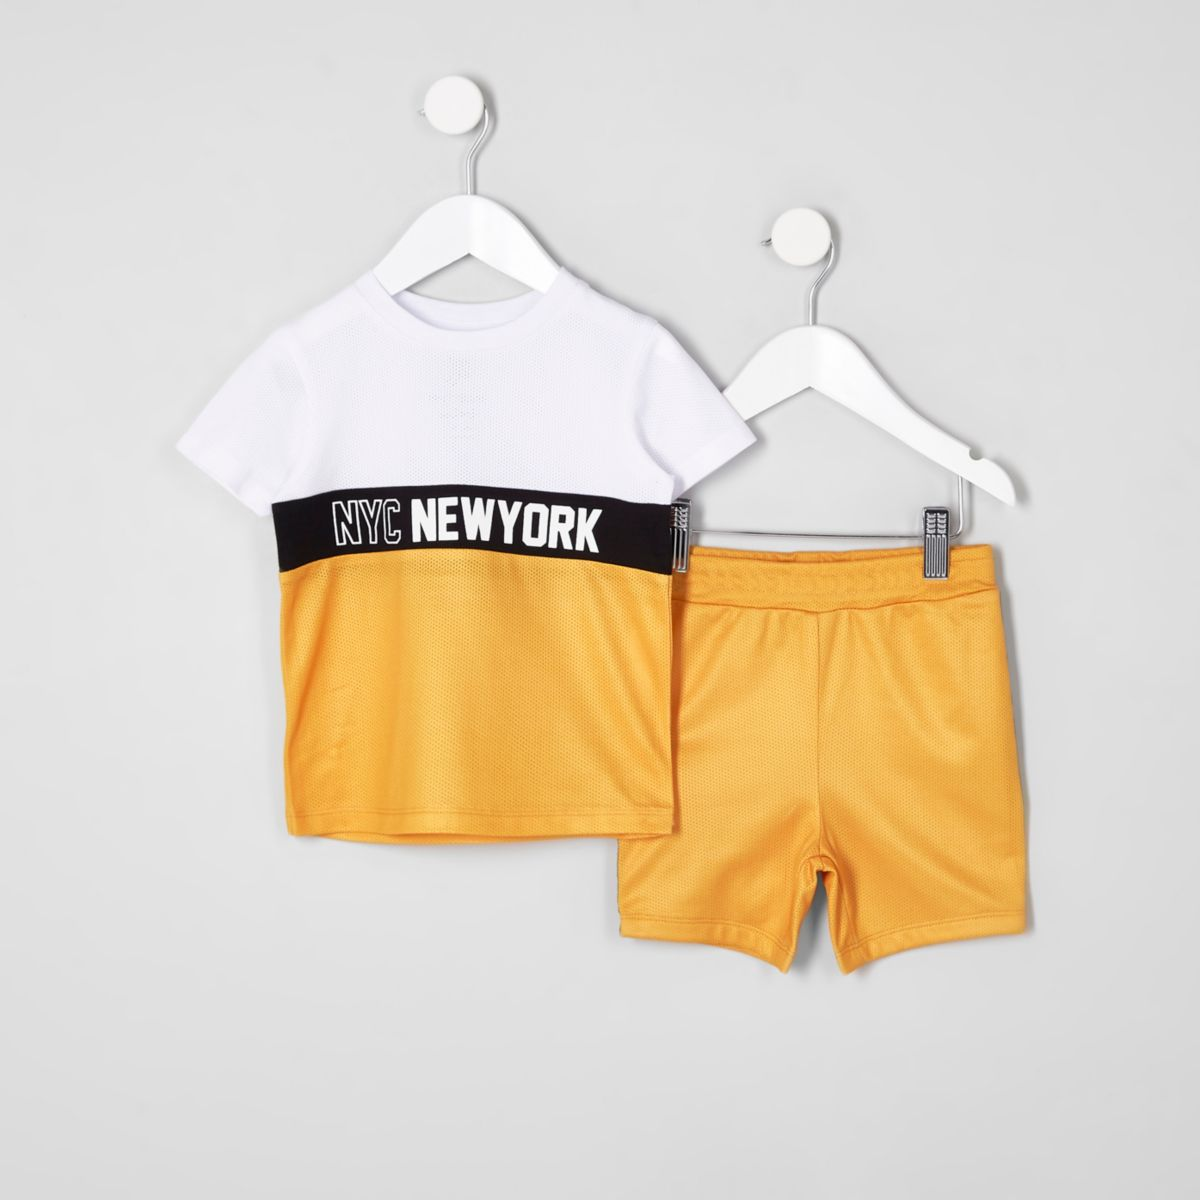 Mini boys yellow block T-shirt outfit